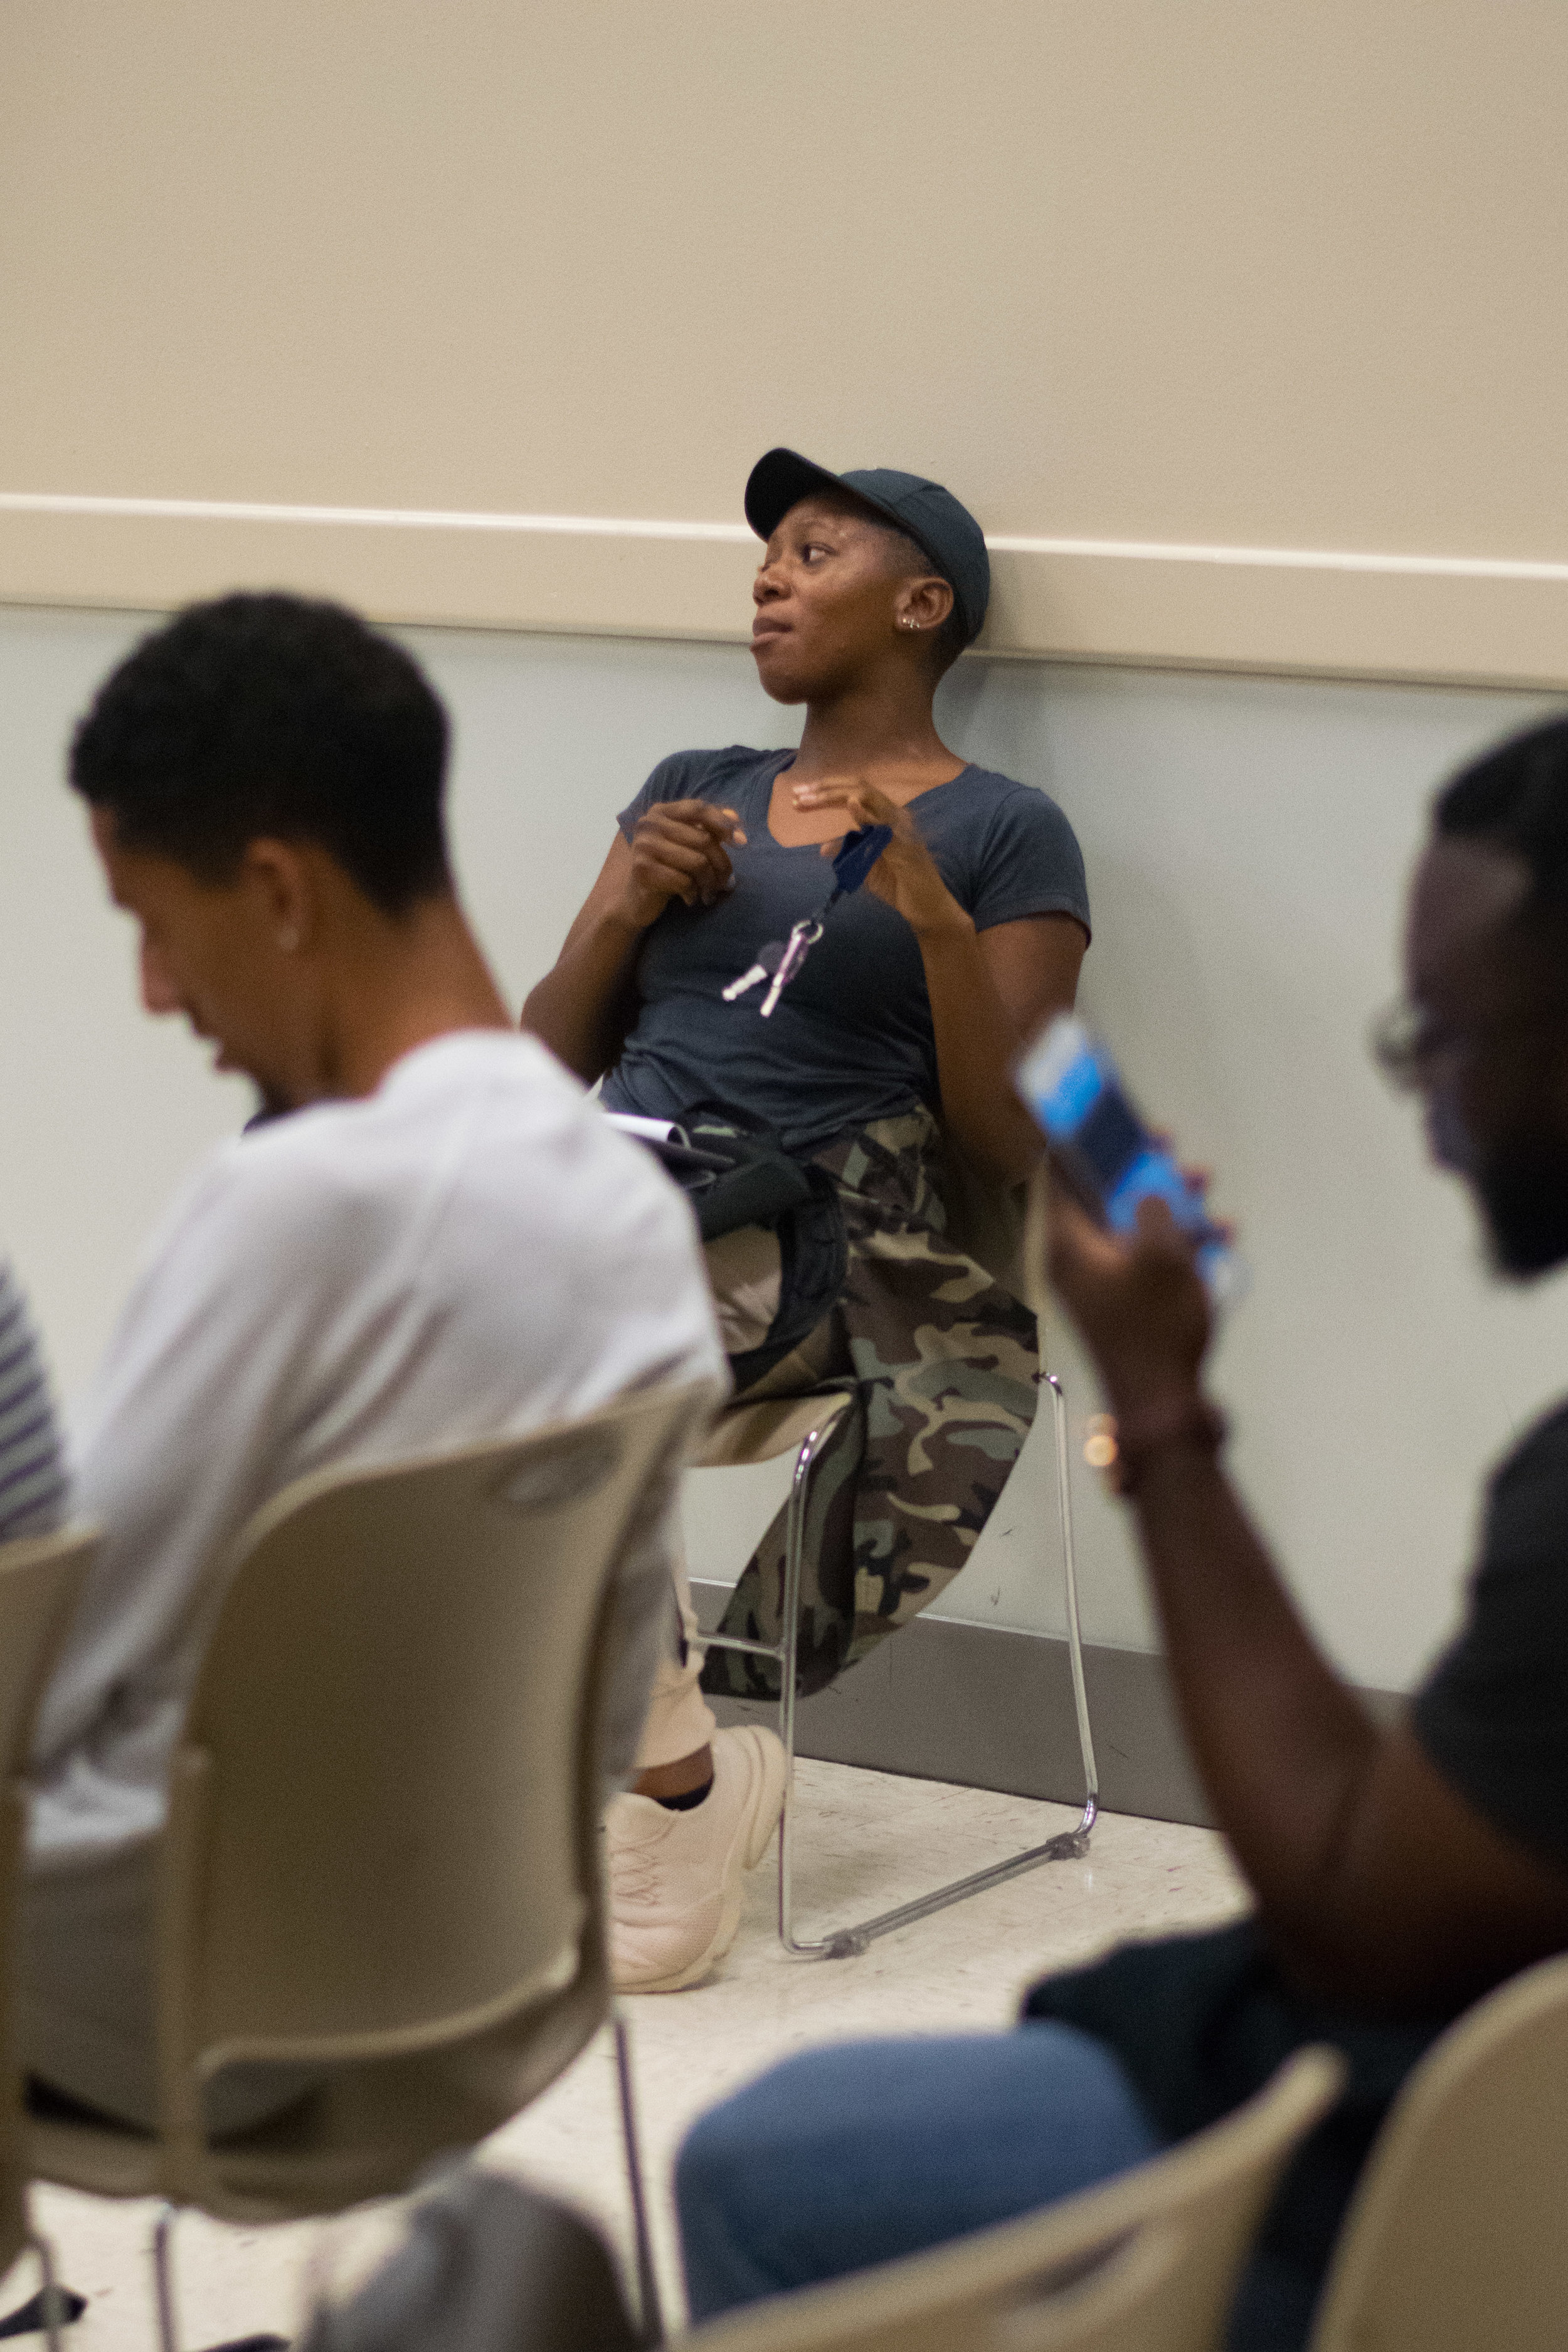 At the first BSU general body meeting hosted by the 2017-2018 Freshman Council on 2 October 2017, students came together to discuss the various layers to the kneeling taking place in the National Football League. Diana Sarnor, kinesiology major in the class of 2019, remarks that players taking a knee during the national anthem is not disrespectful. Sarnor then lists all the various ways we disrespect the flag everyday. Photo: Amina Lampkin.